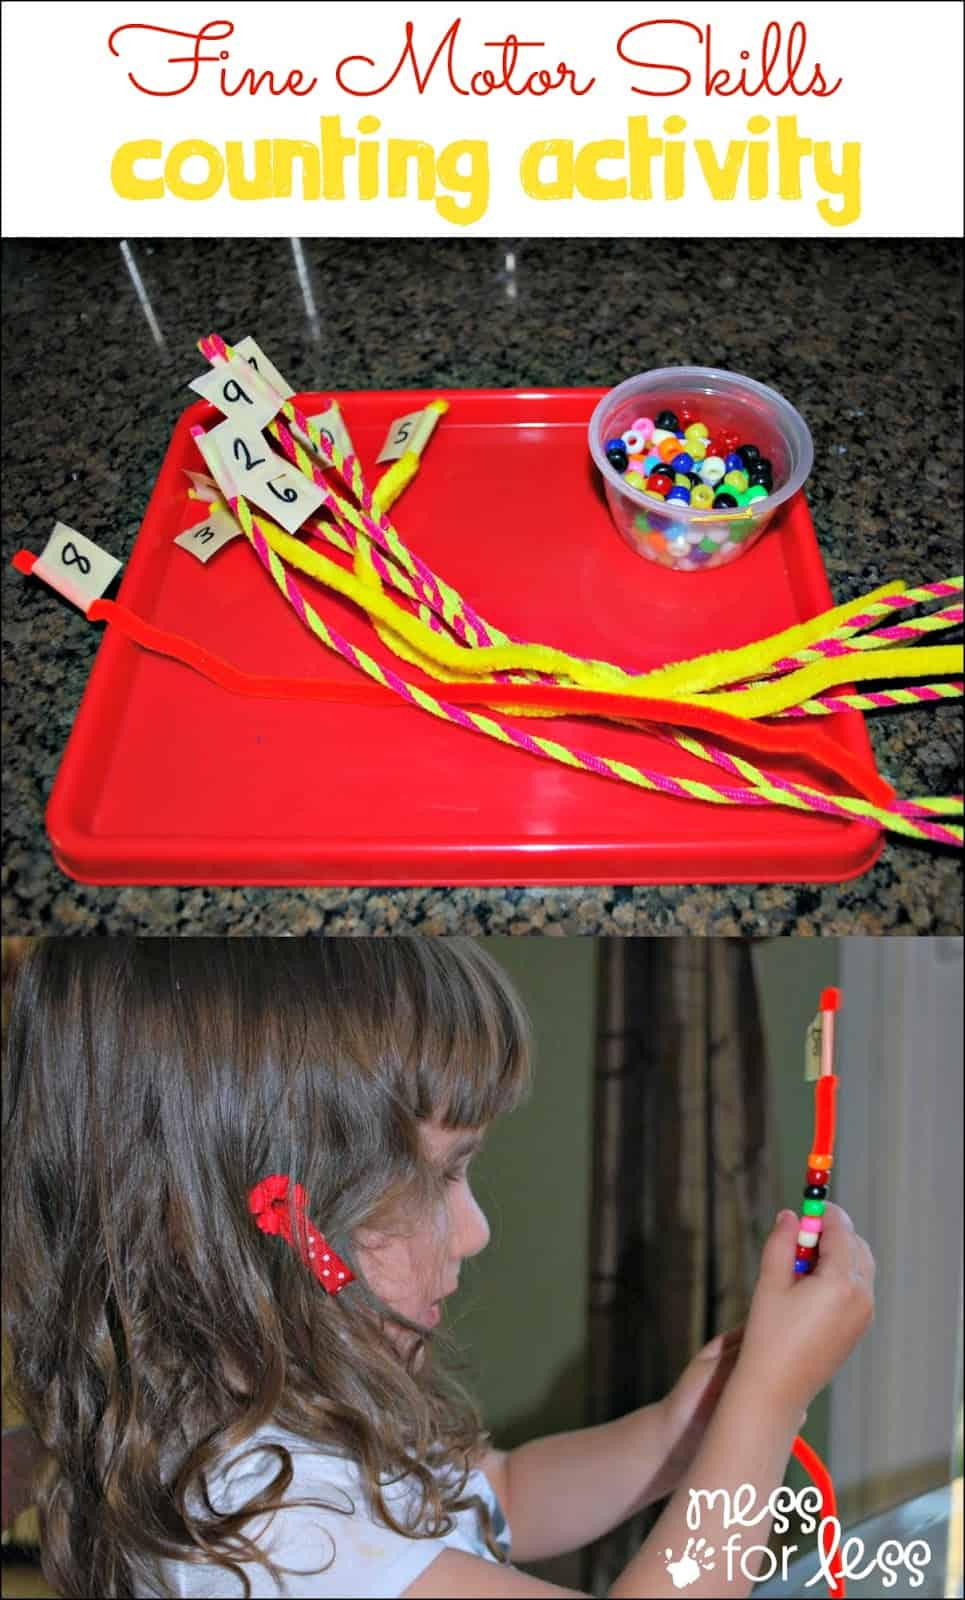 Fine Motor Skills Counting Activity - great for little hands and kids who are starting to learn numbers and one to one correspondence